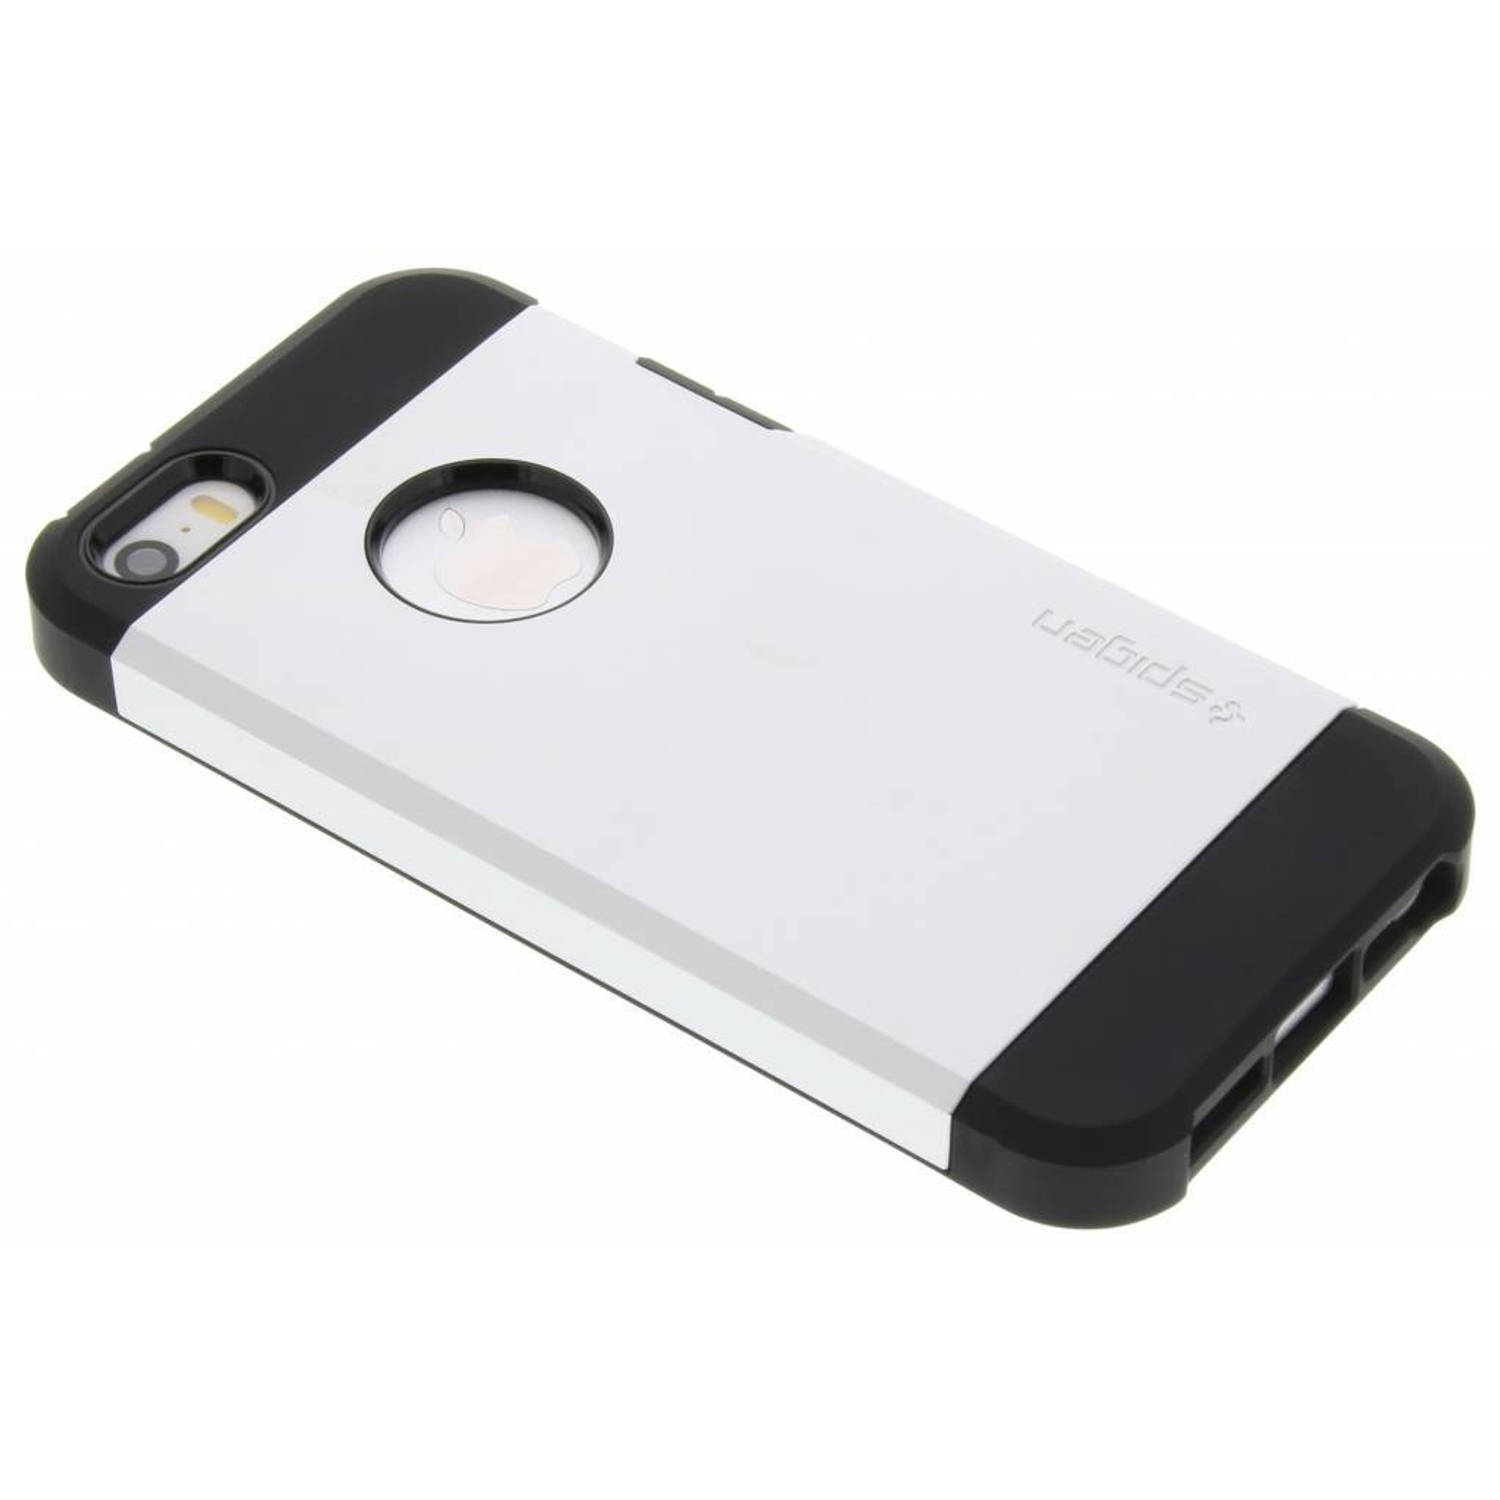 Zilveren Tough Armor Case voor de iPhone 5 / 5s / SE